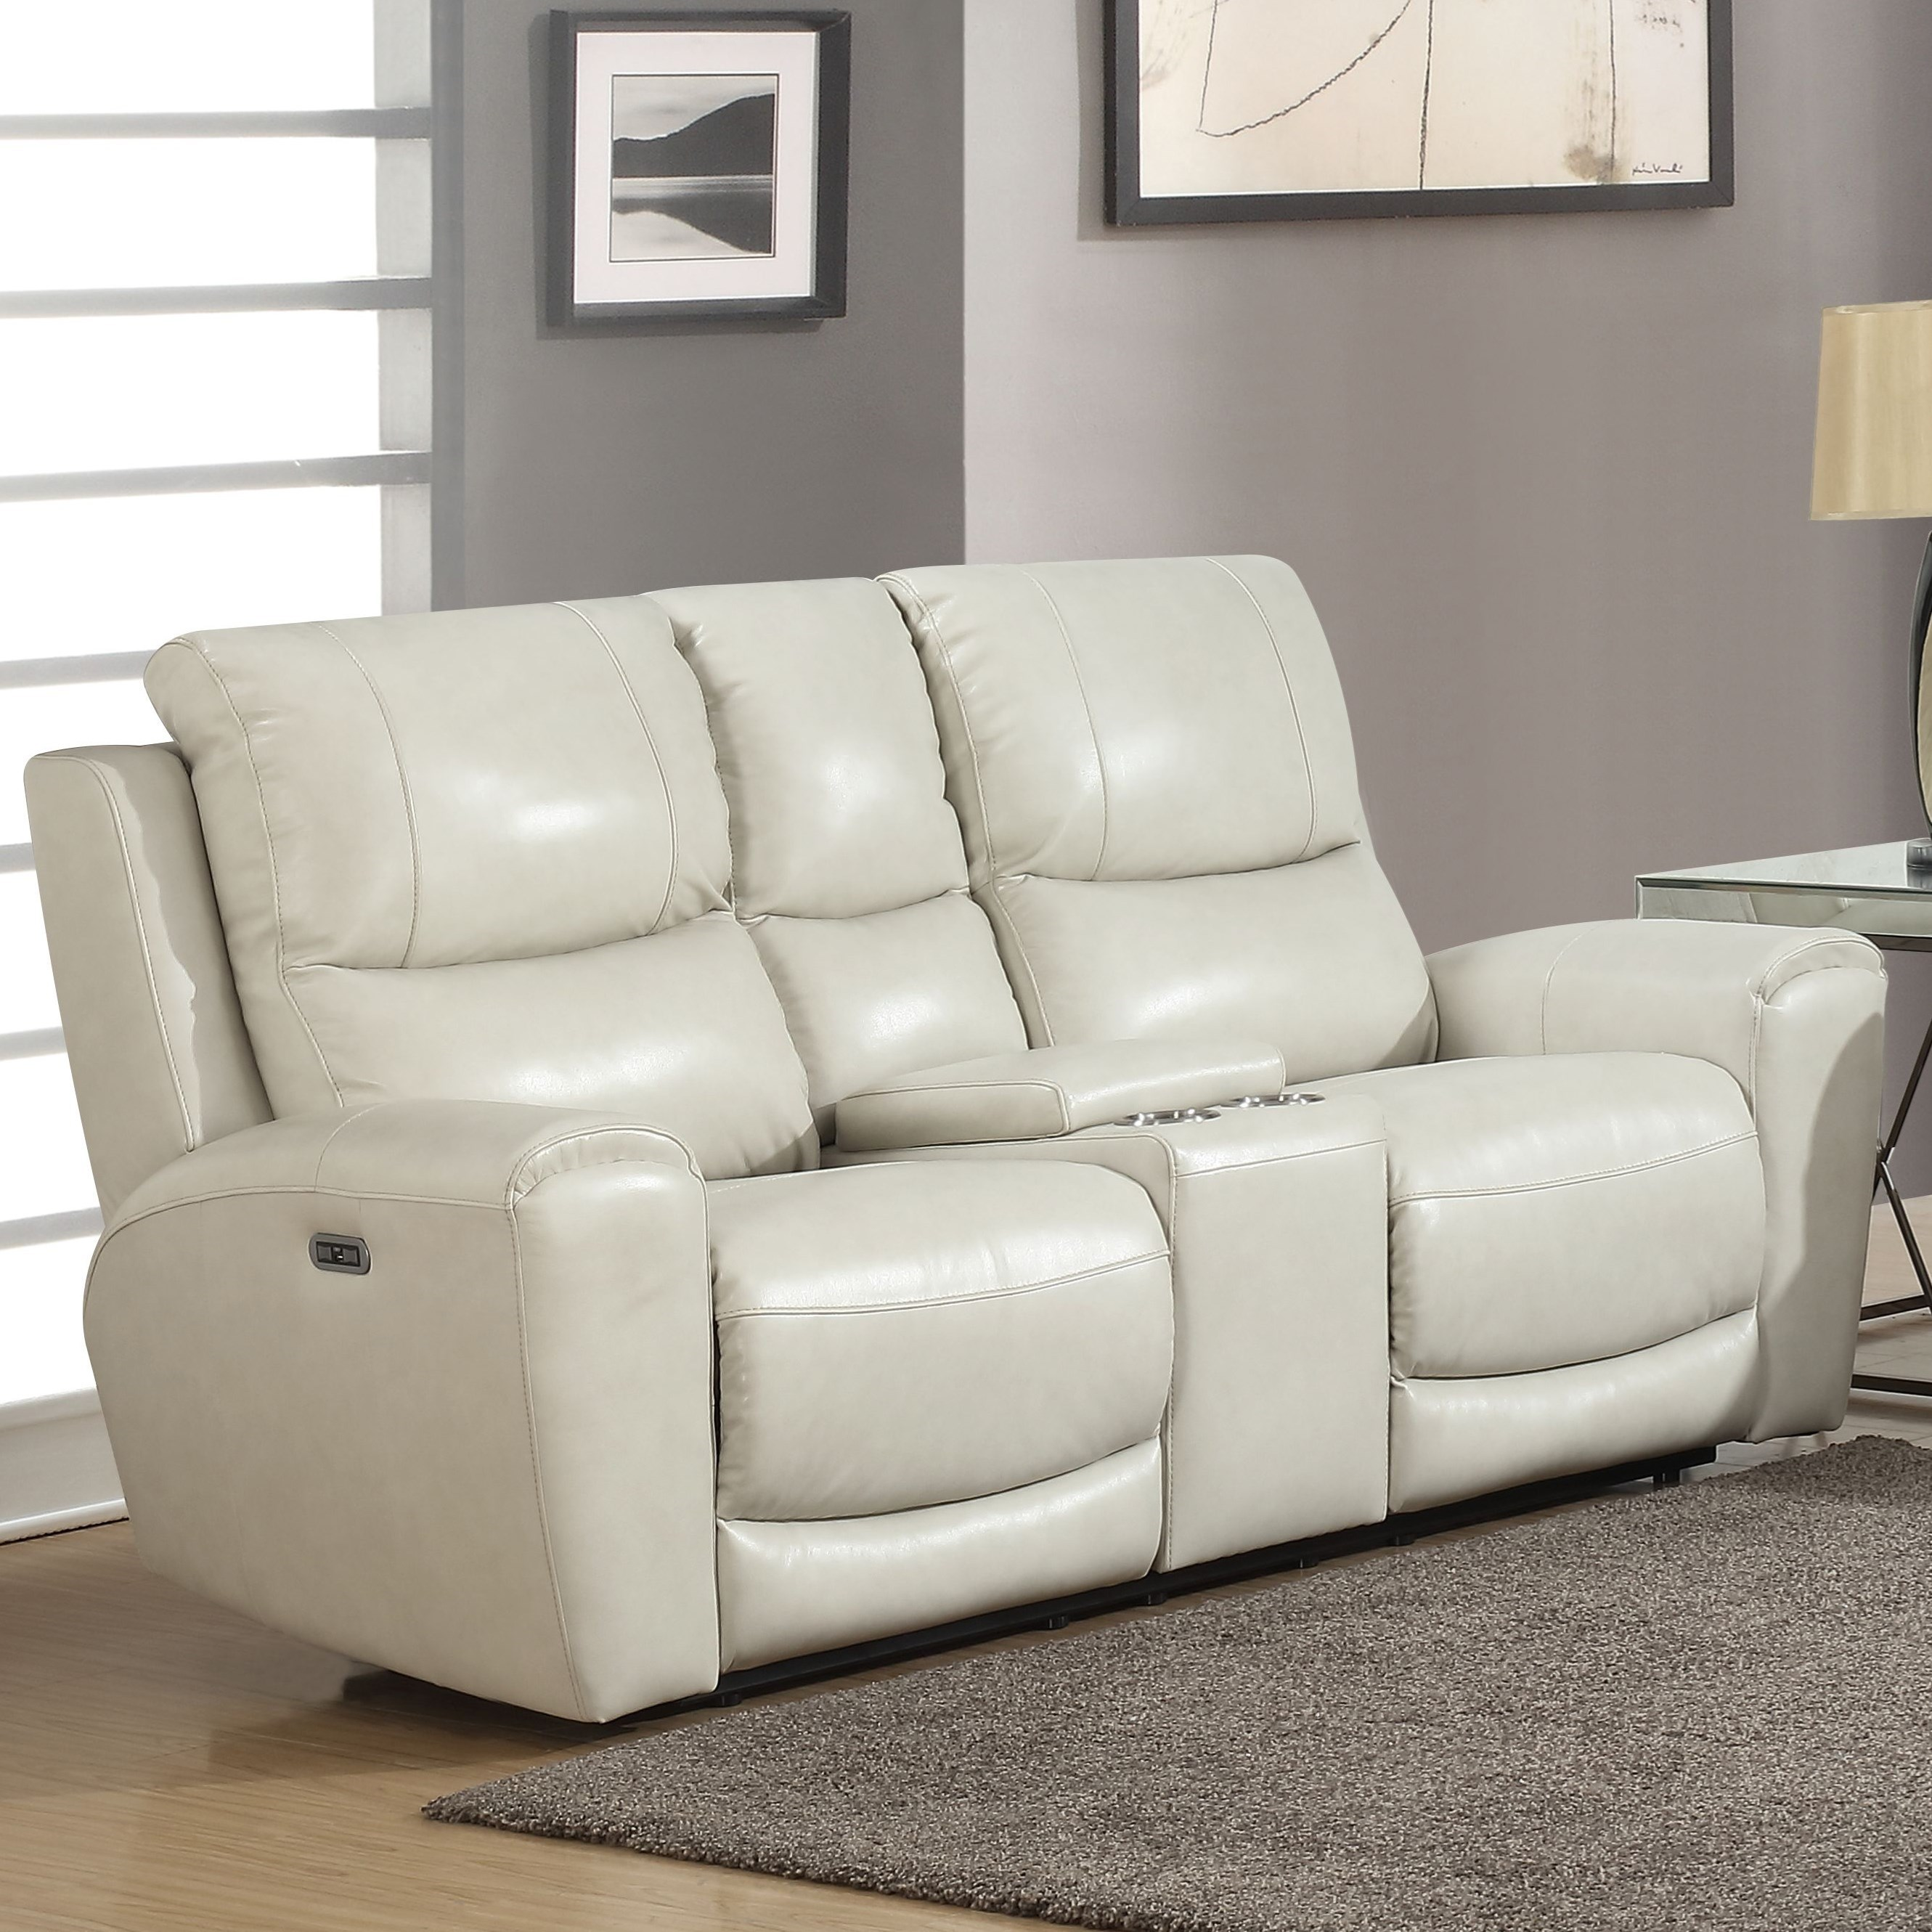 Laurel Power Recliner Loveseat w/ Console by Steve Silver at Northeast Factory Direct